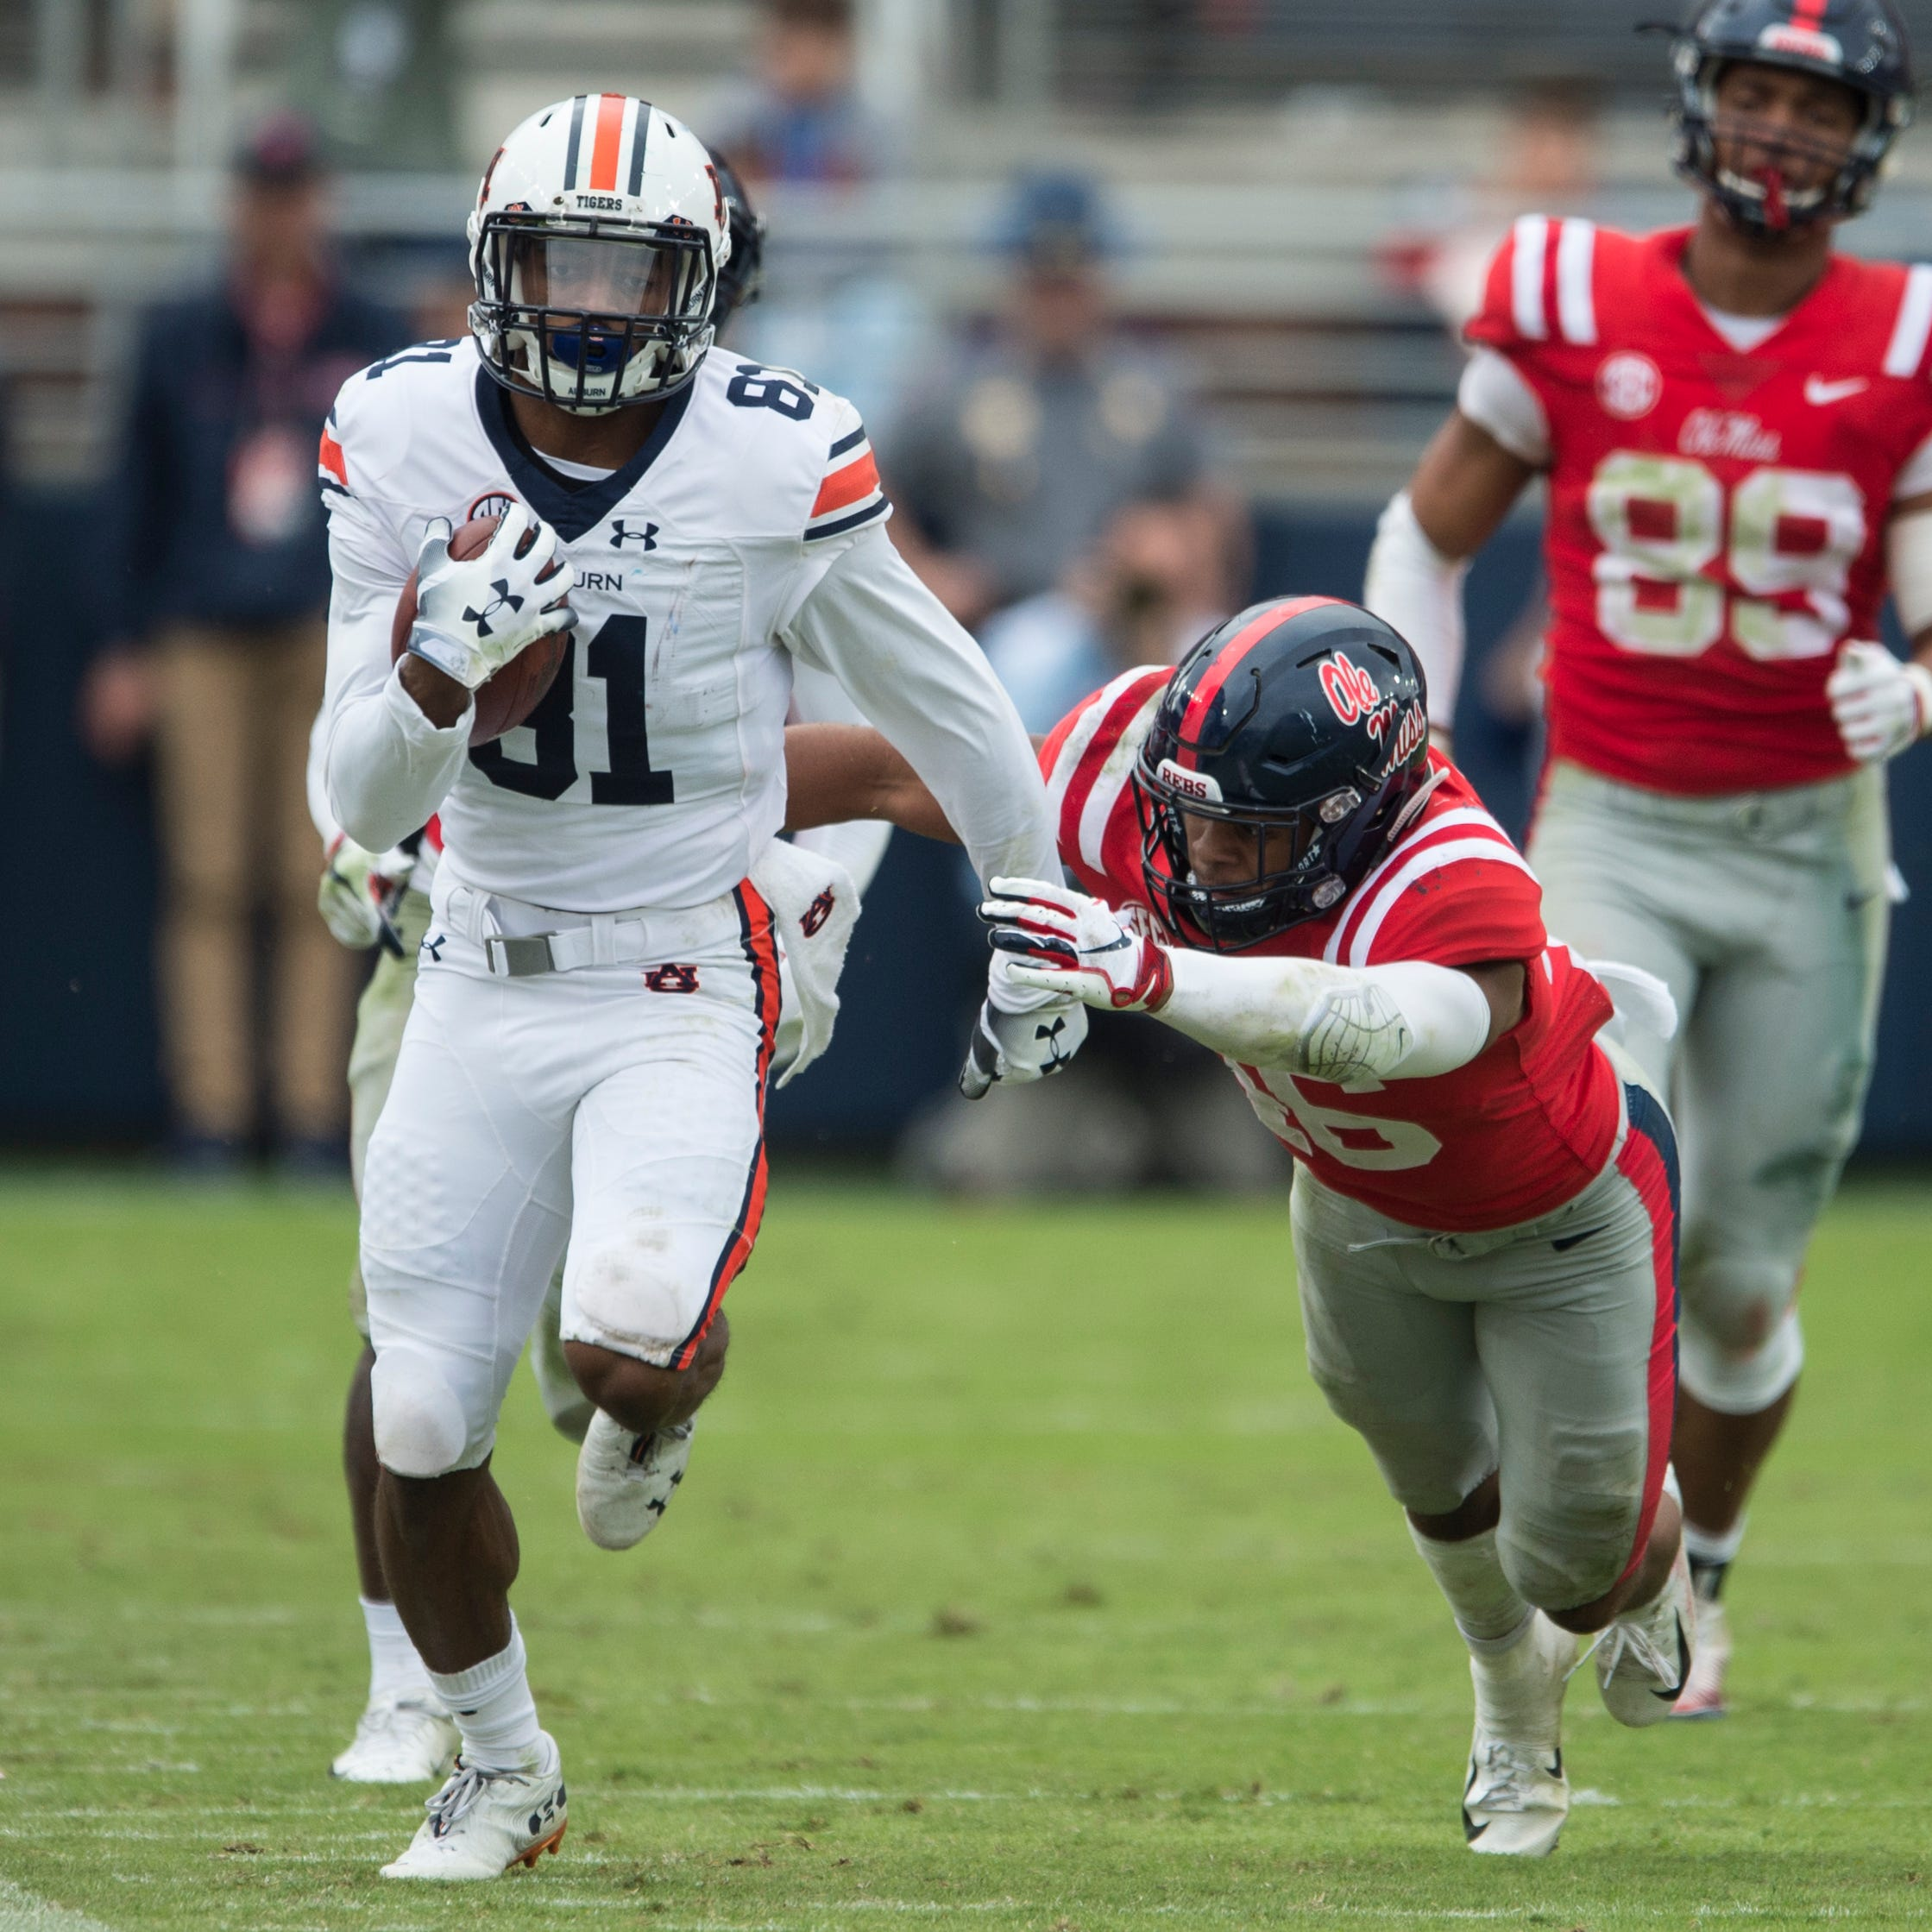 NFL Draft Day 3 recap: Auburn's Slayton goes to Giants, Deshaun Davis to Bengals, Cox to Dolphins, Russell to Jaguars